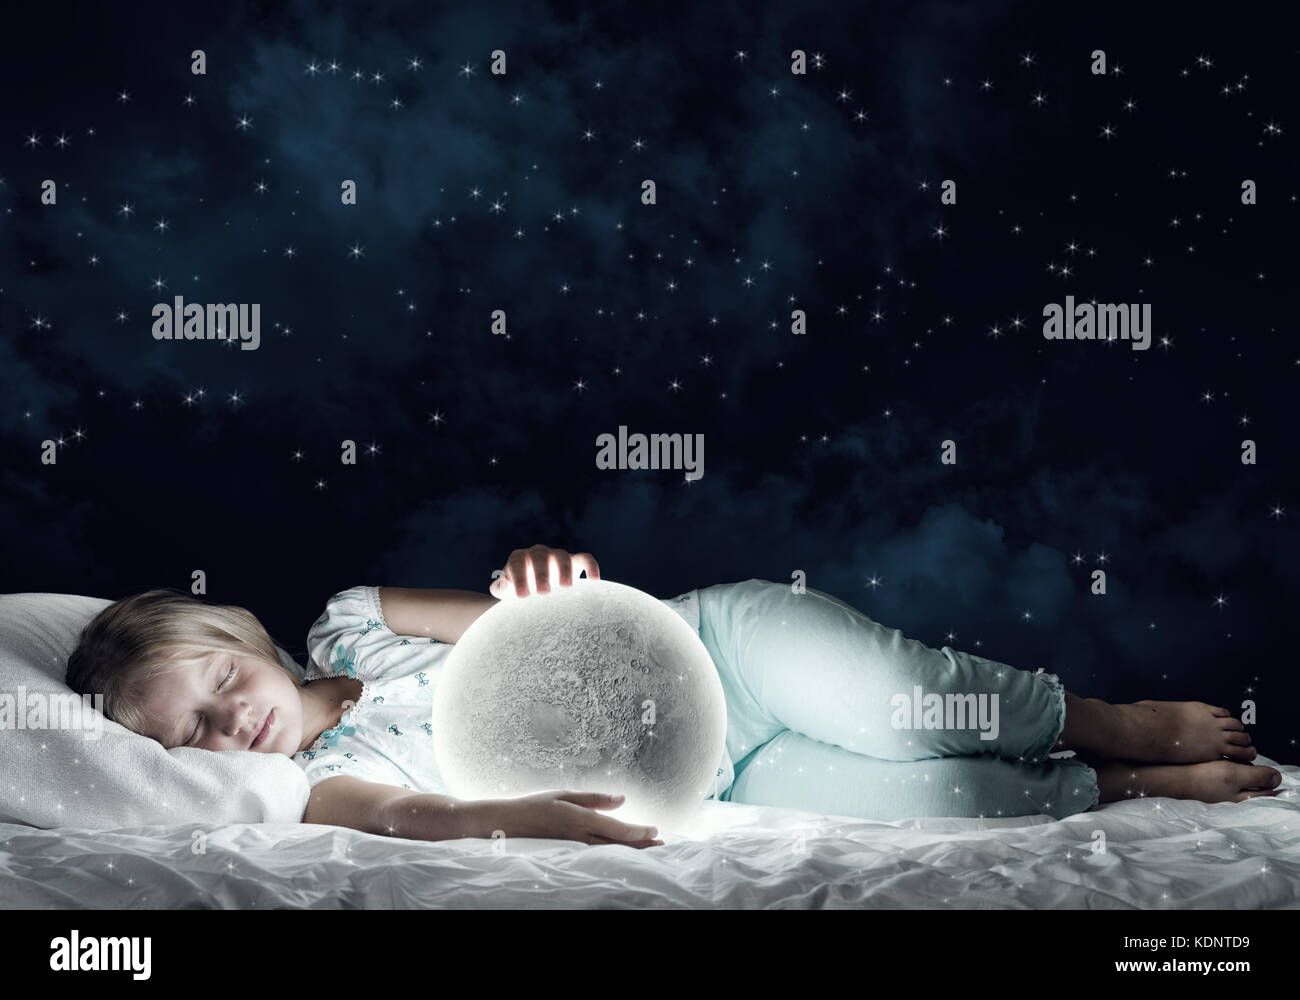 Girl in her bed and moon planet - Stock Image